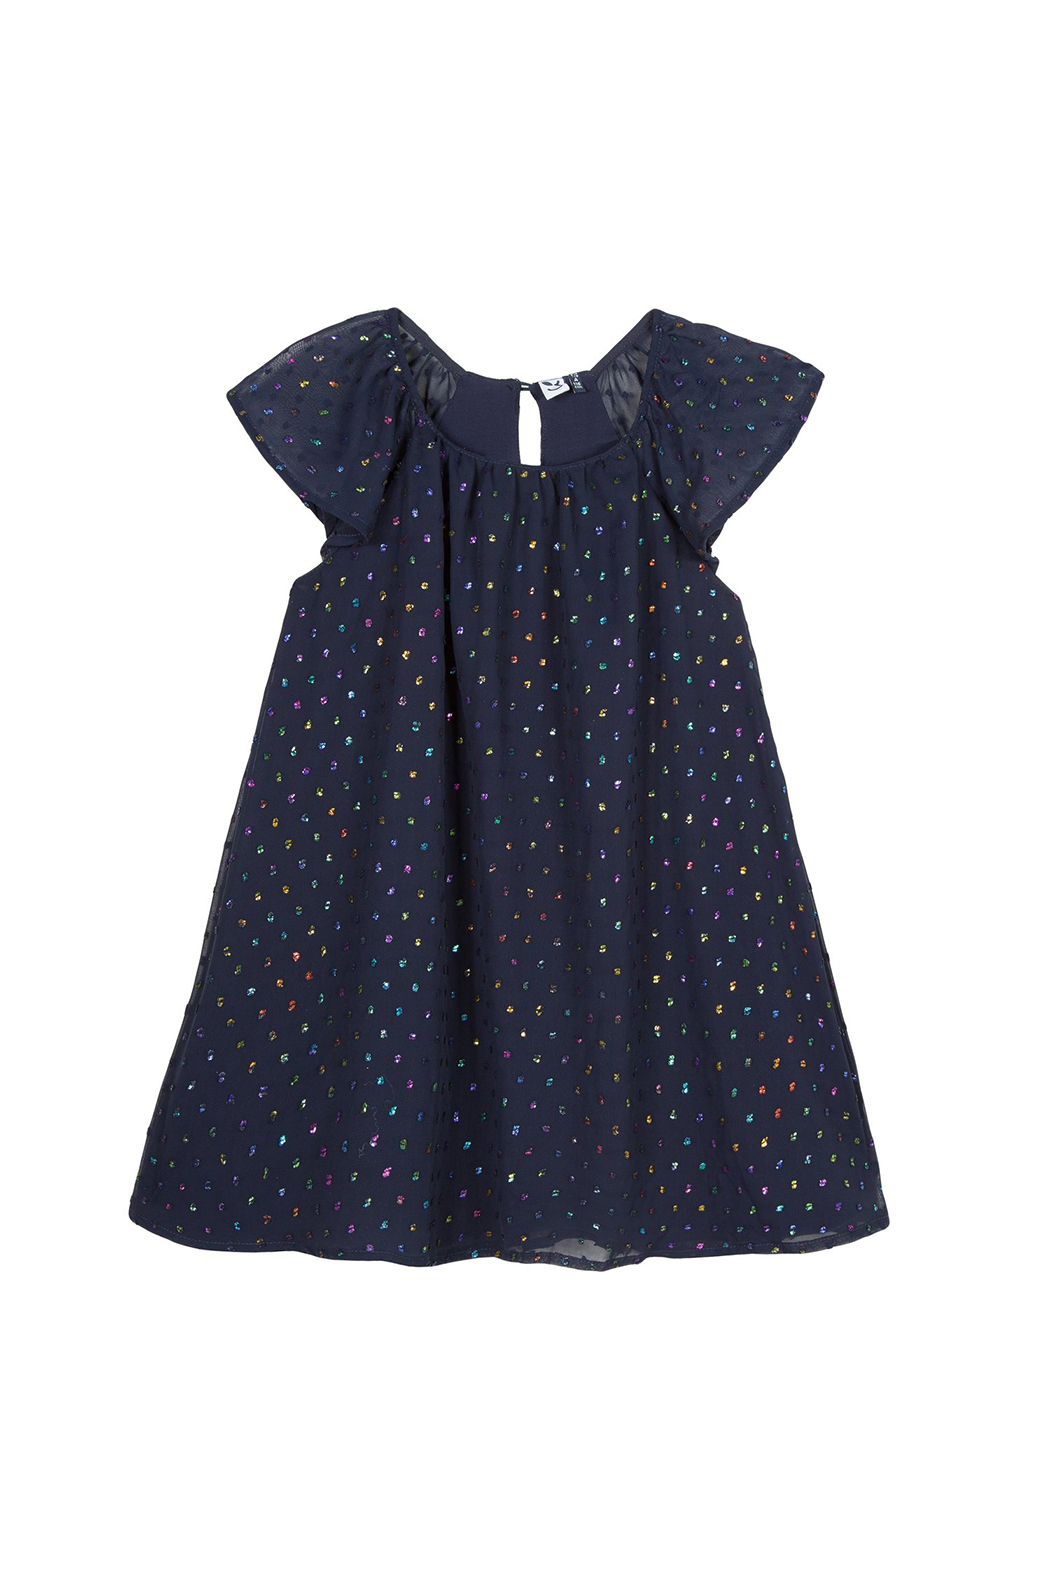 3Pommes Happy Coral Dress - Main Image